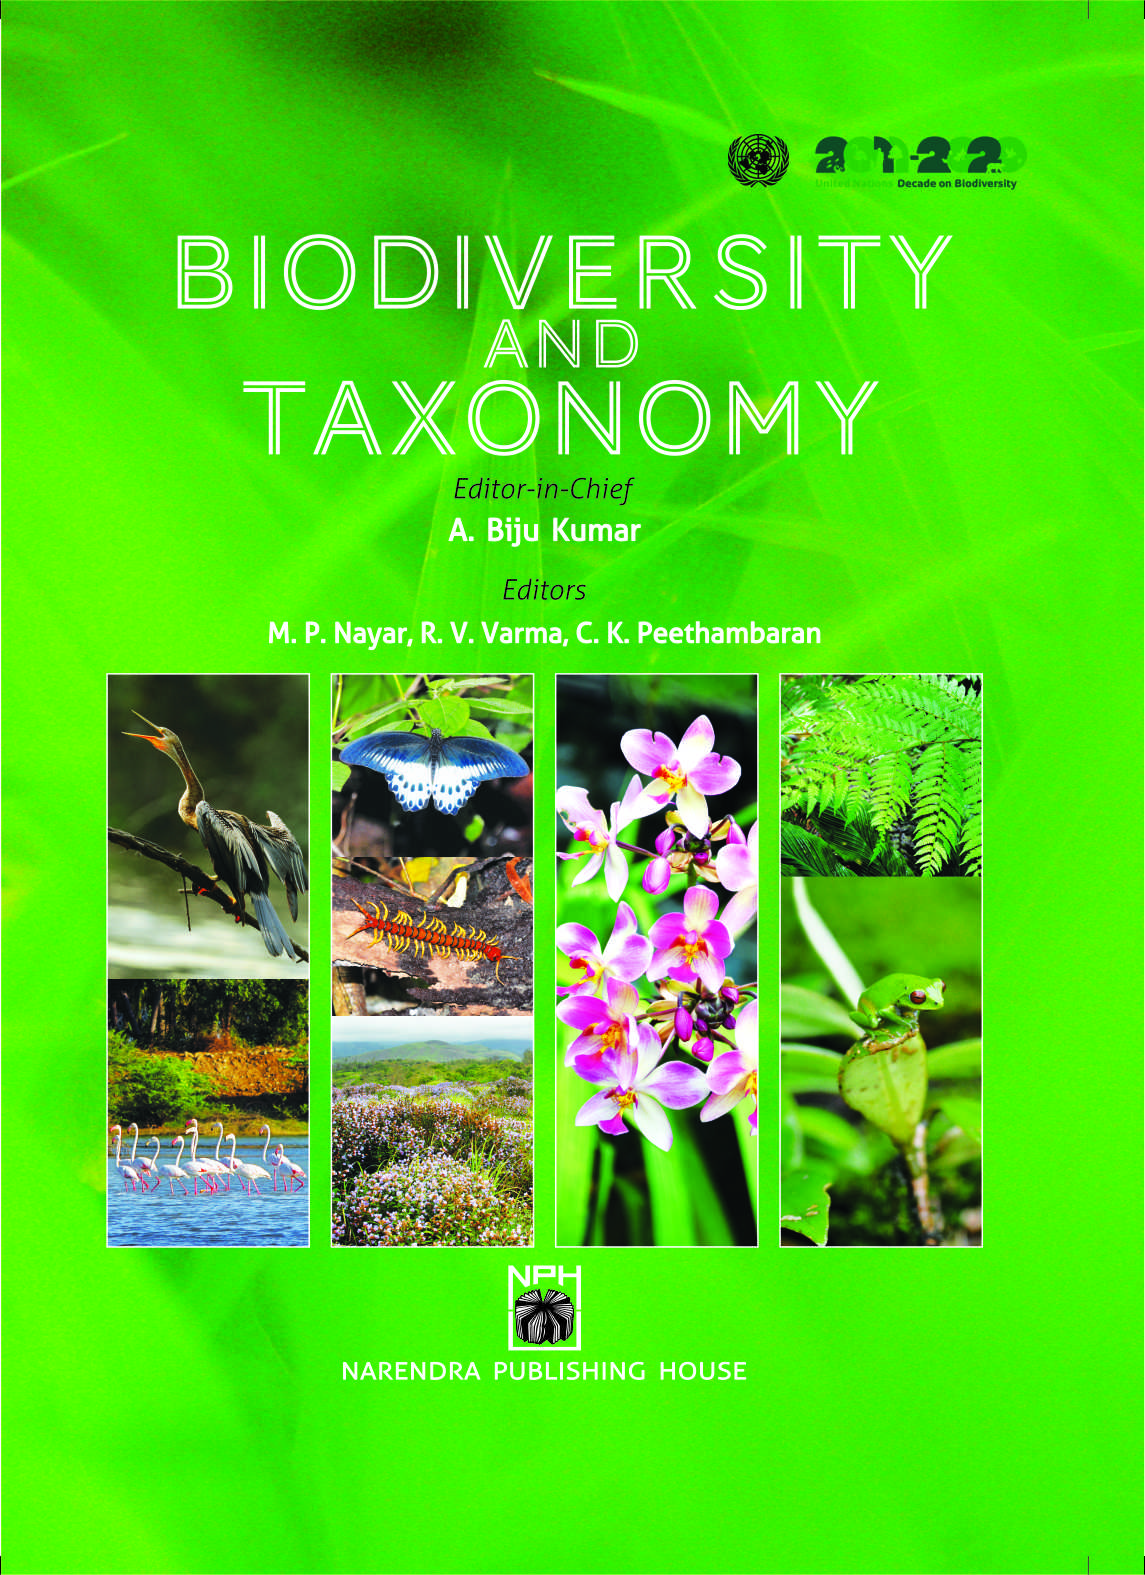 Biodiversity and Taxonomy